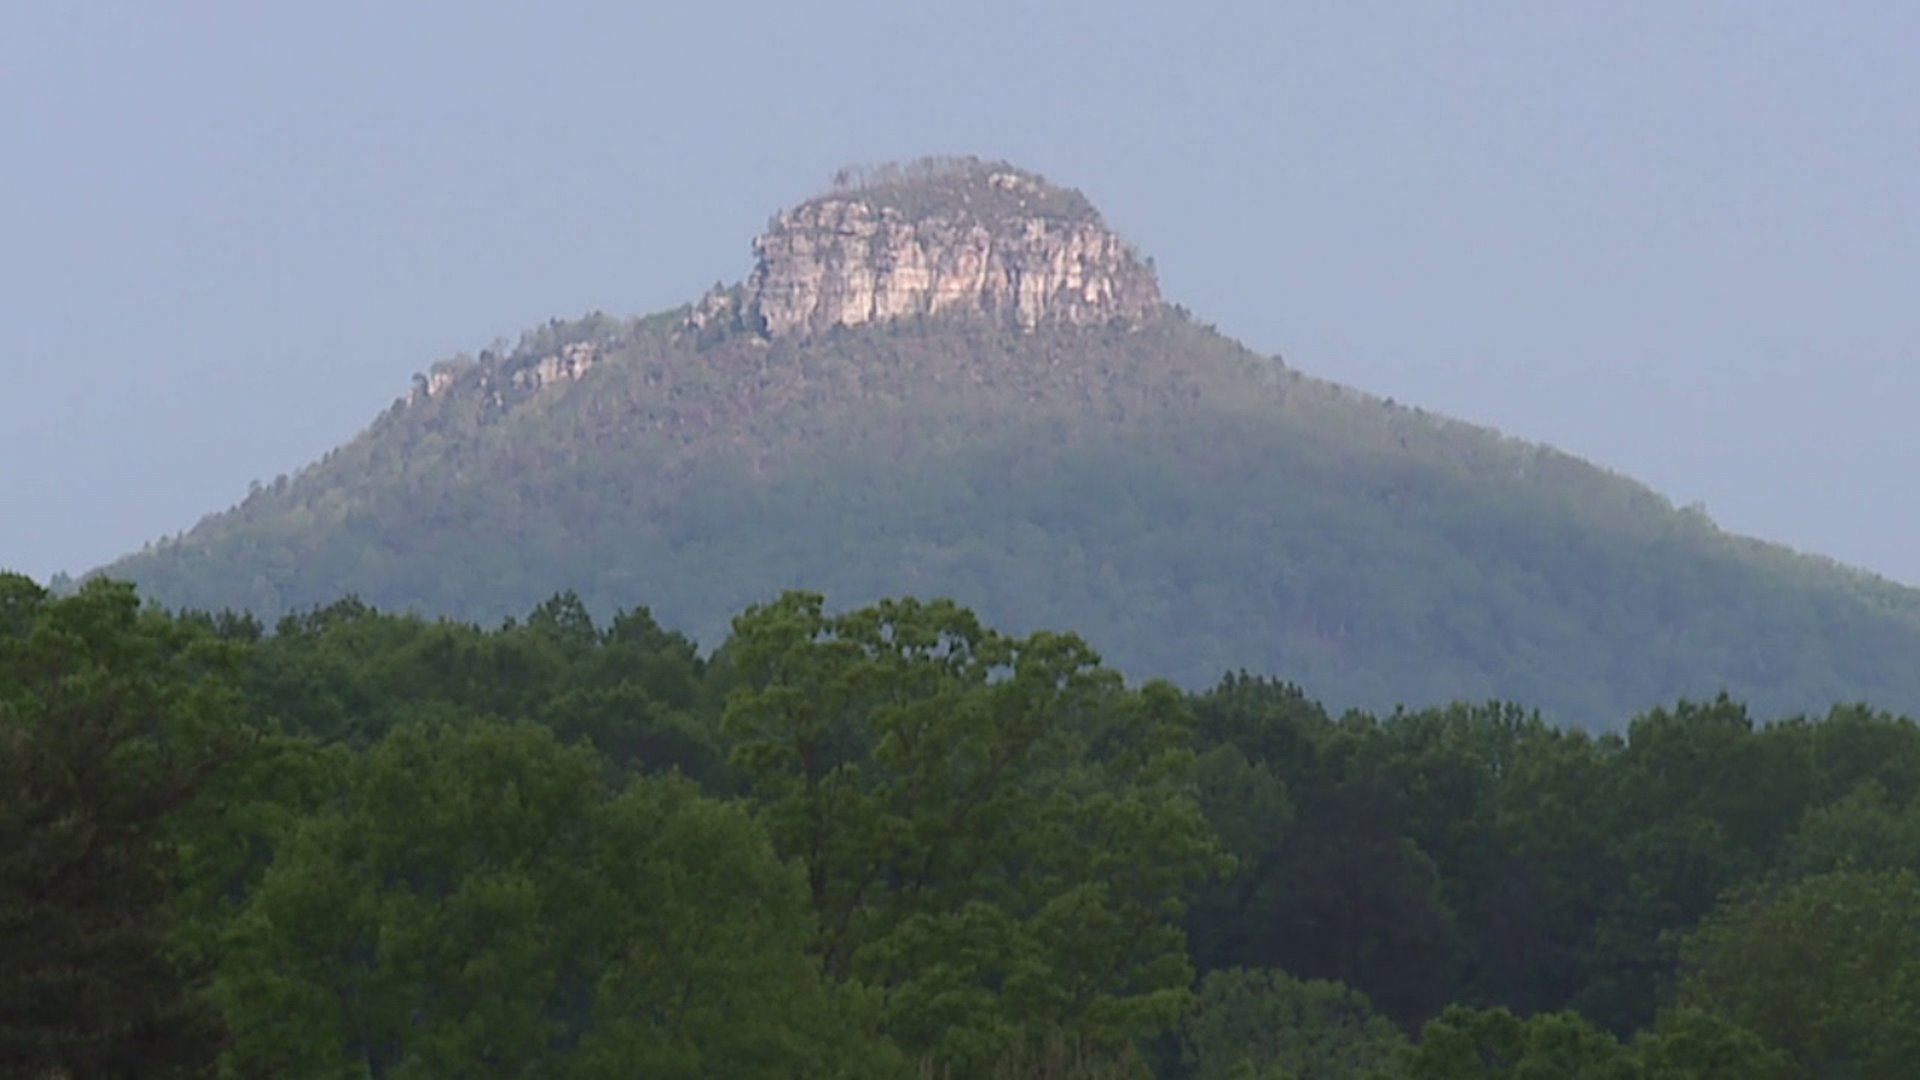 North Carolina state parks to reopen with restrictions